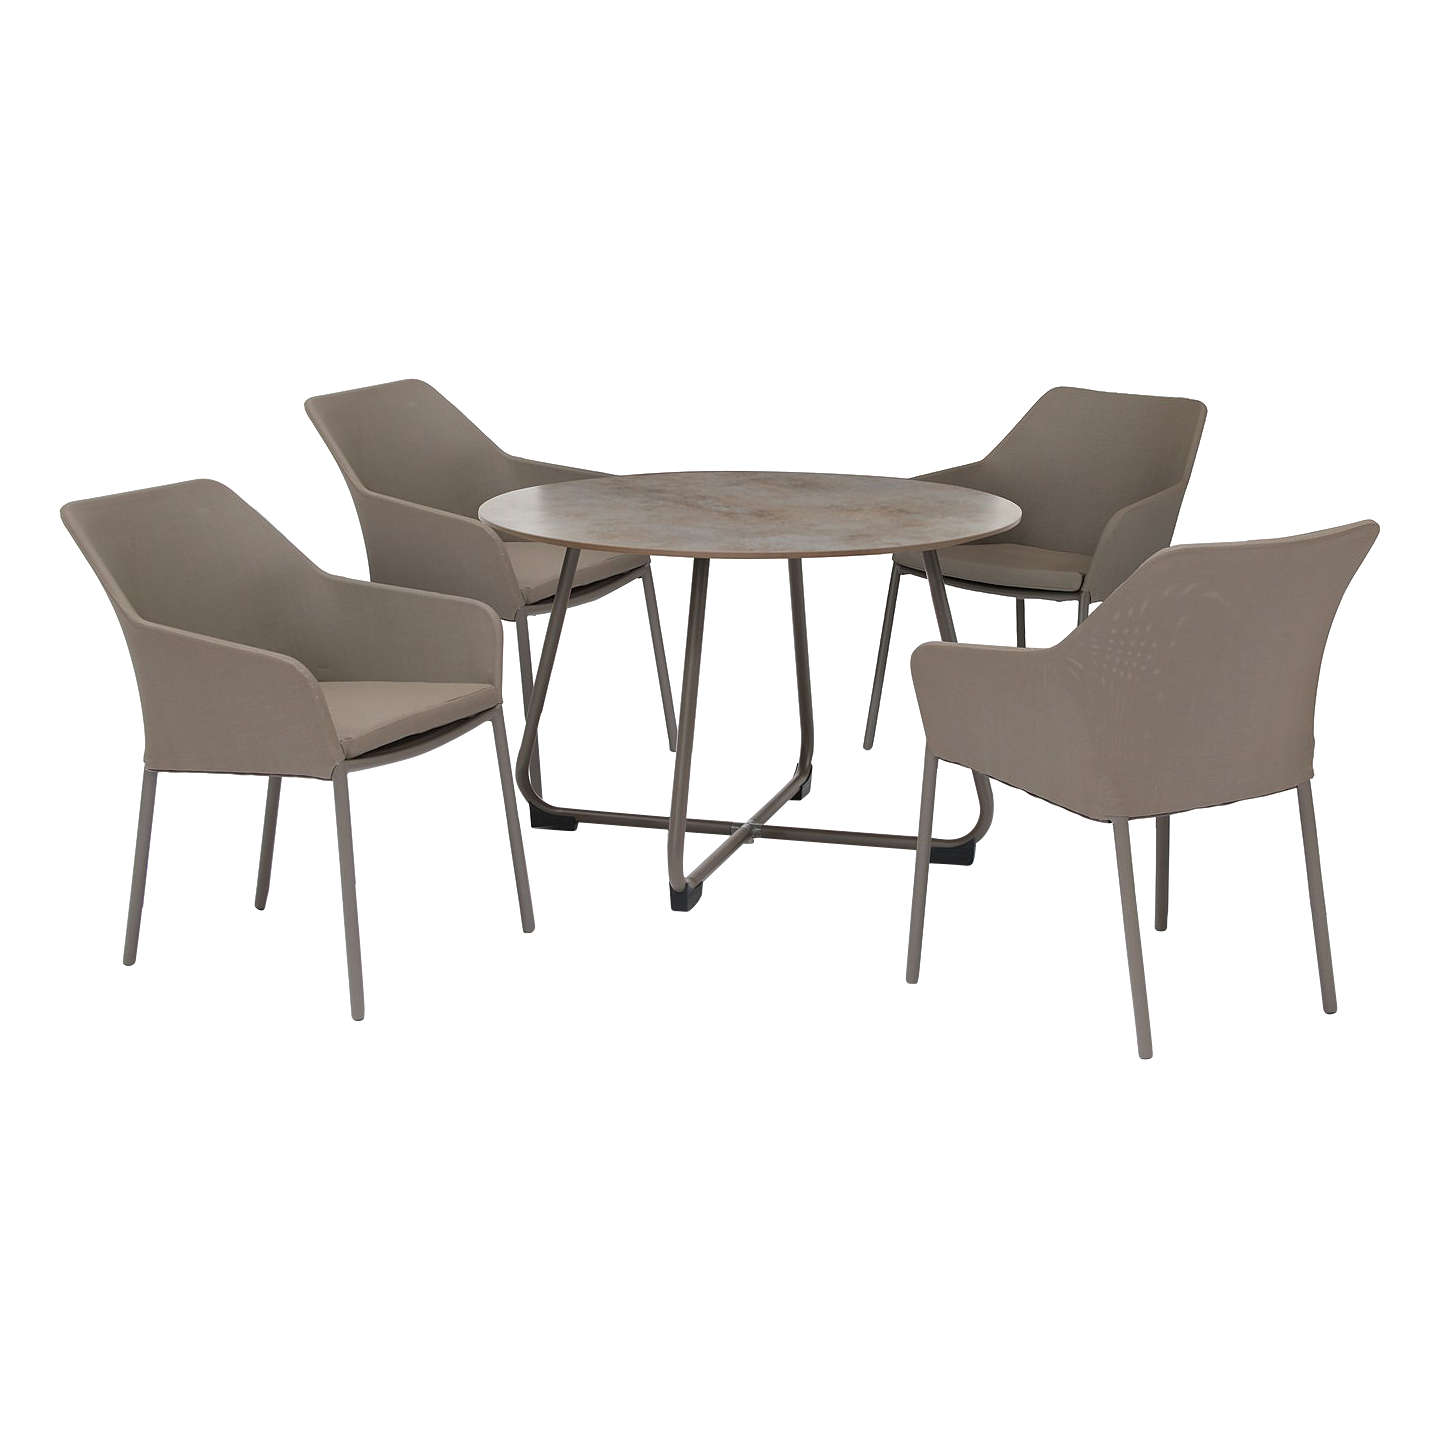 kettler manhattan 4 seater wrap garden table and chairs set taupe